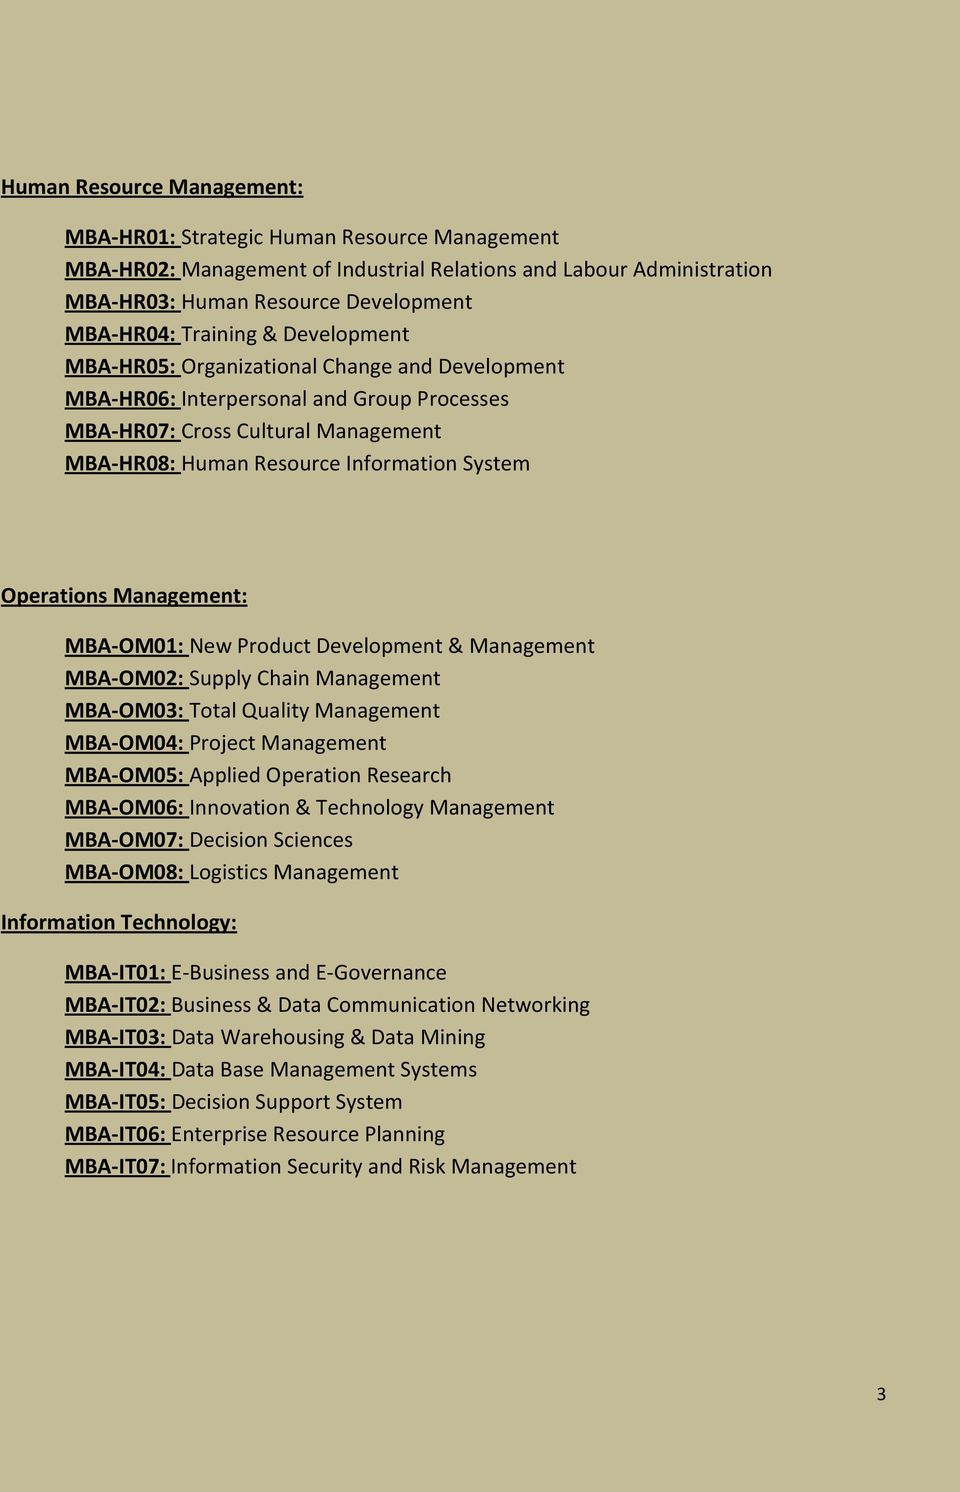 Management: MBA-OM01: New Product Development & Management MBA-OM02: Supply Chain Management MBA-OM03: Total Quality Management MBA-OM04: Project Management MBA-OM05: Applied Operation Research